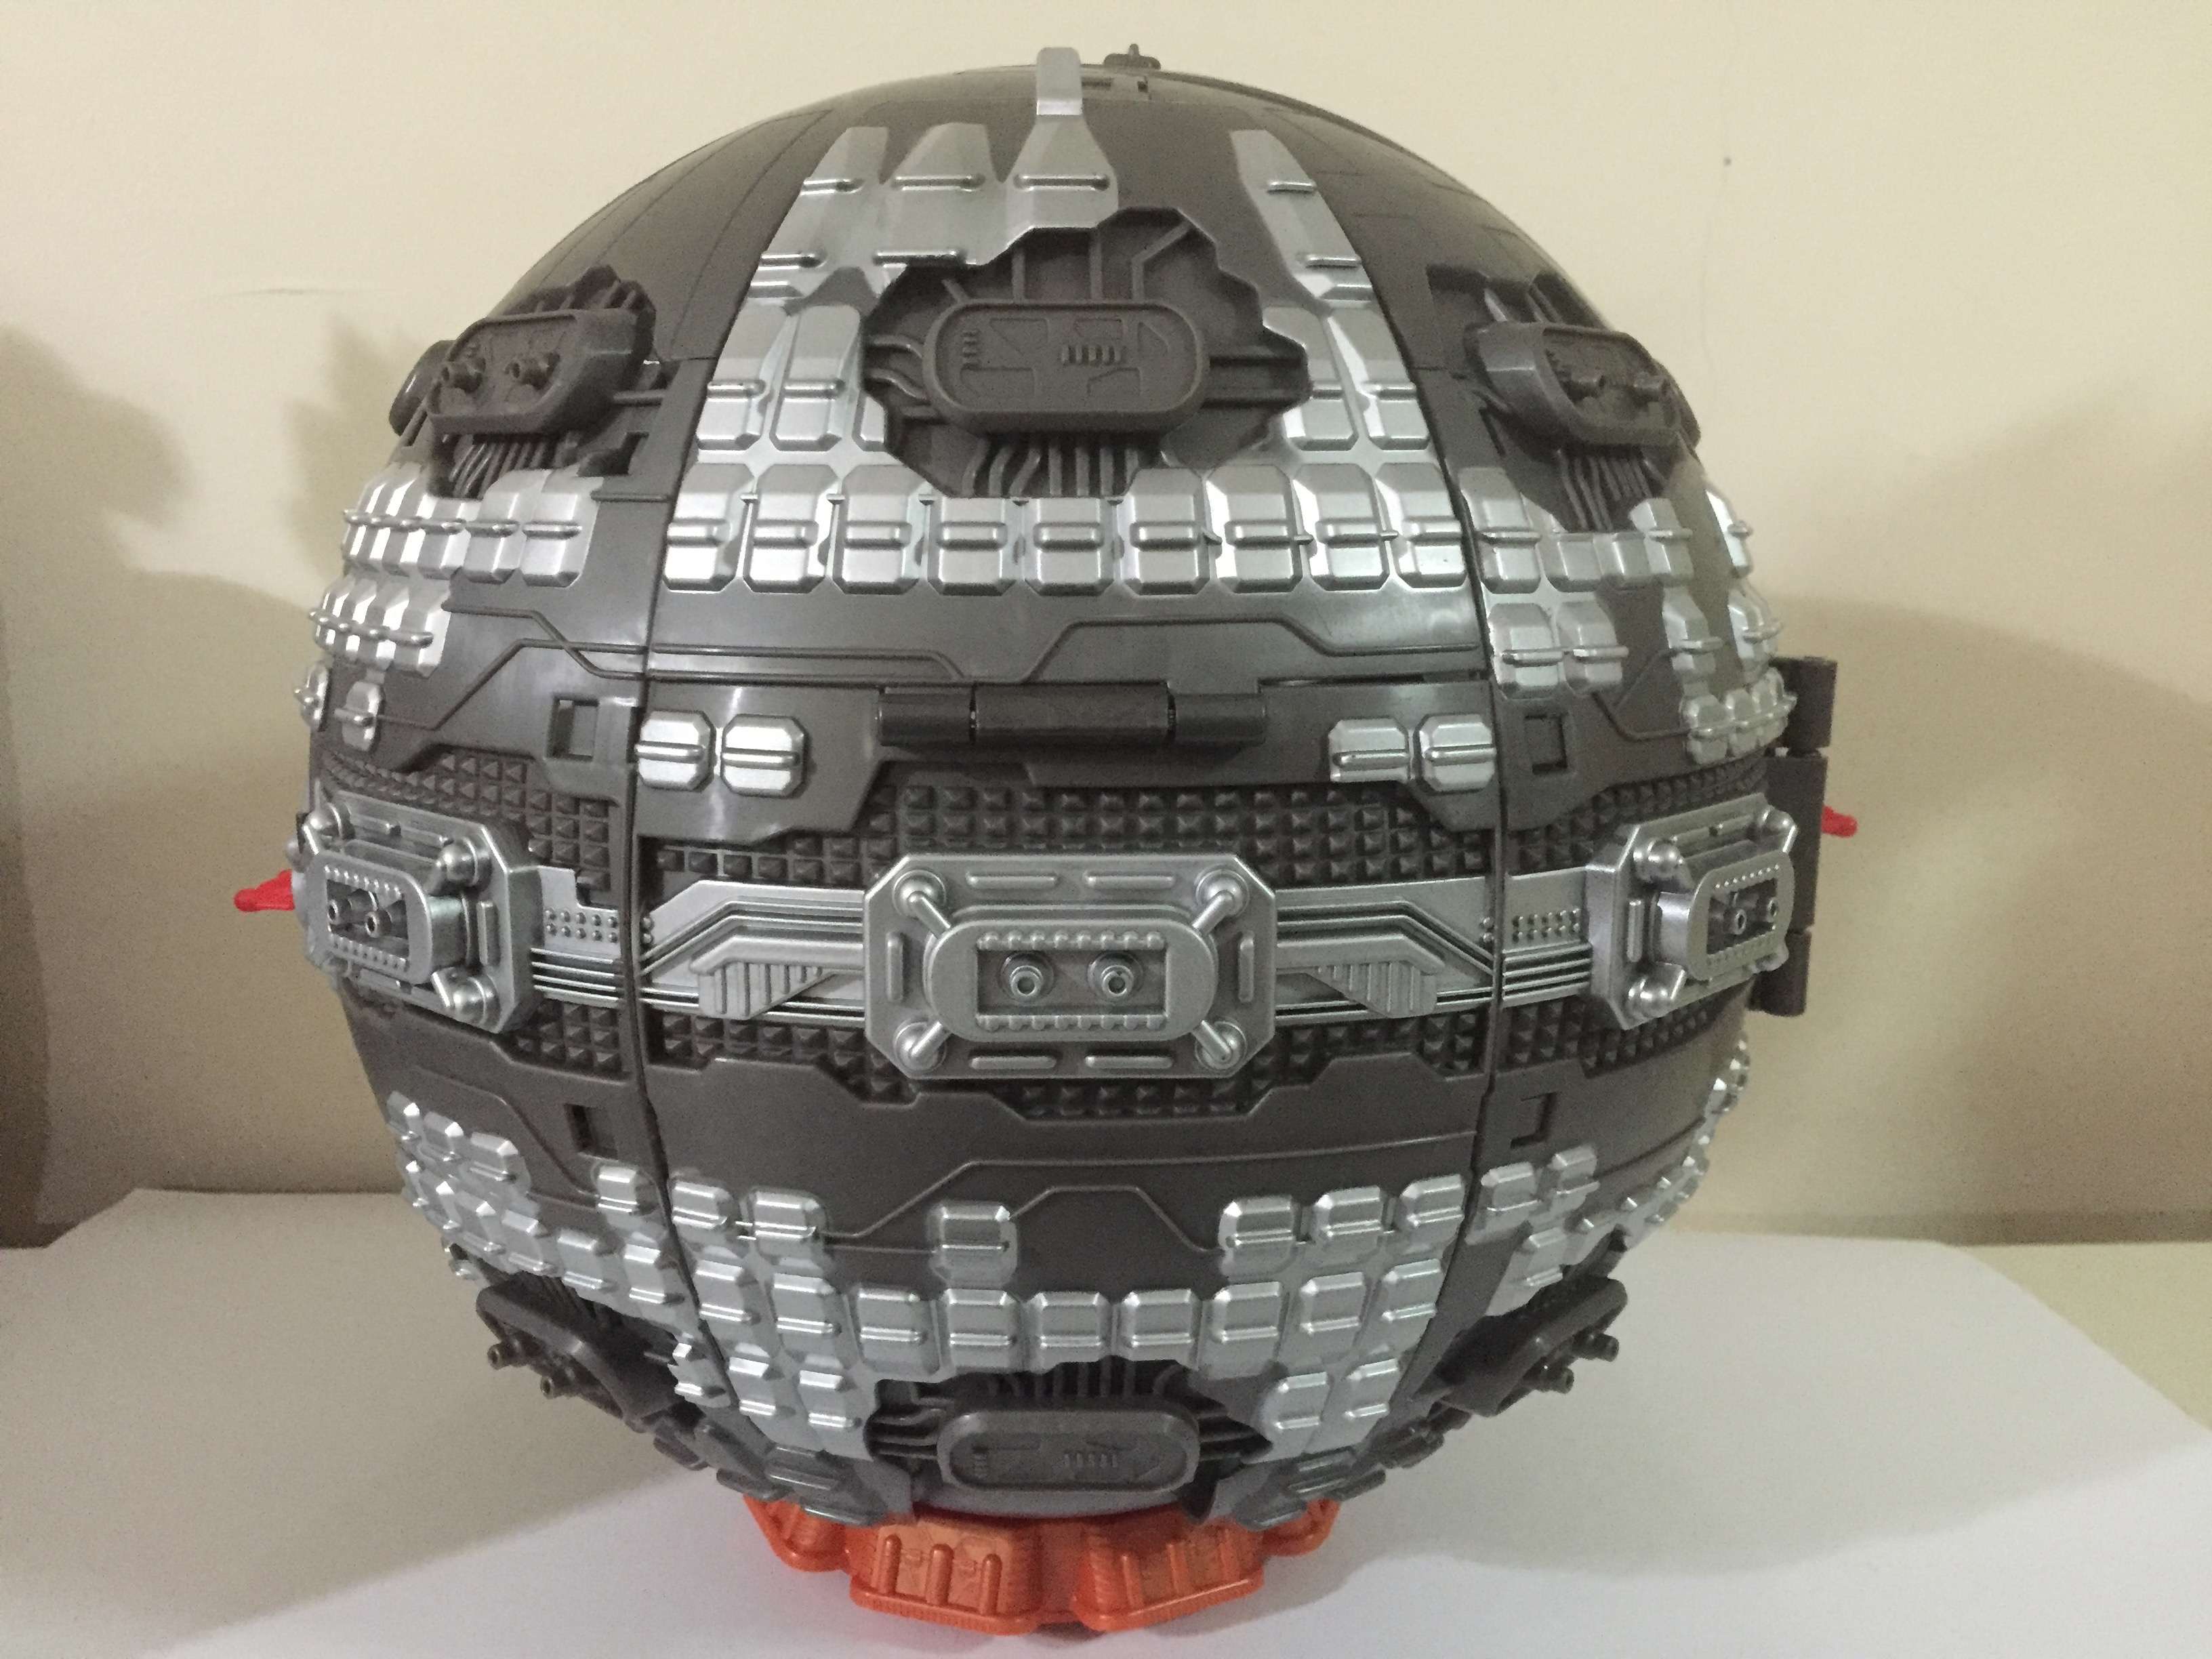 The Technodrome!